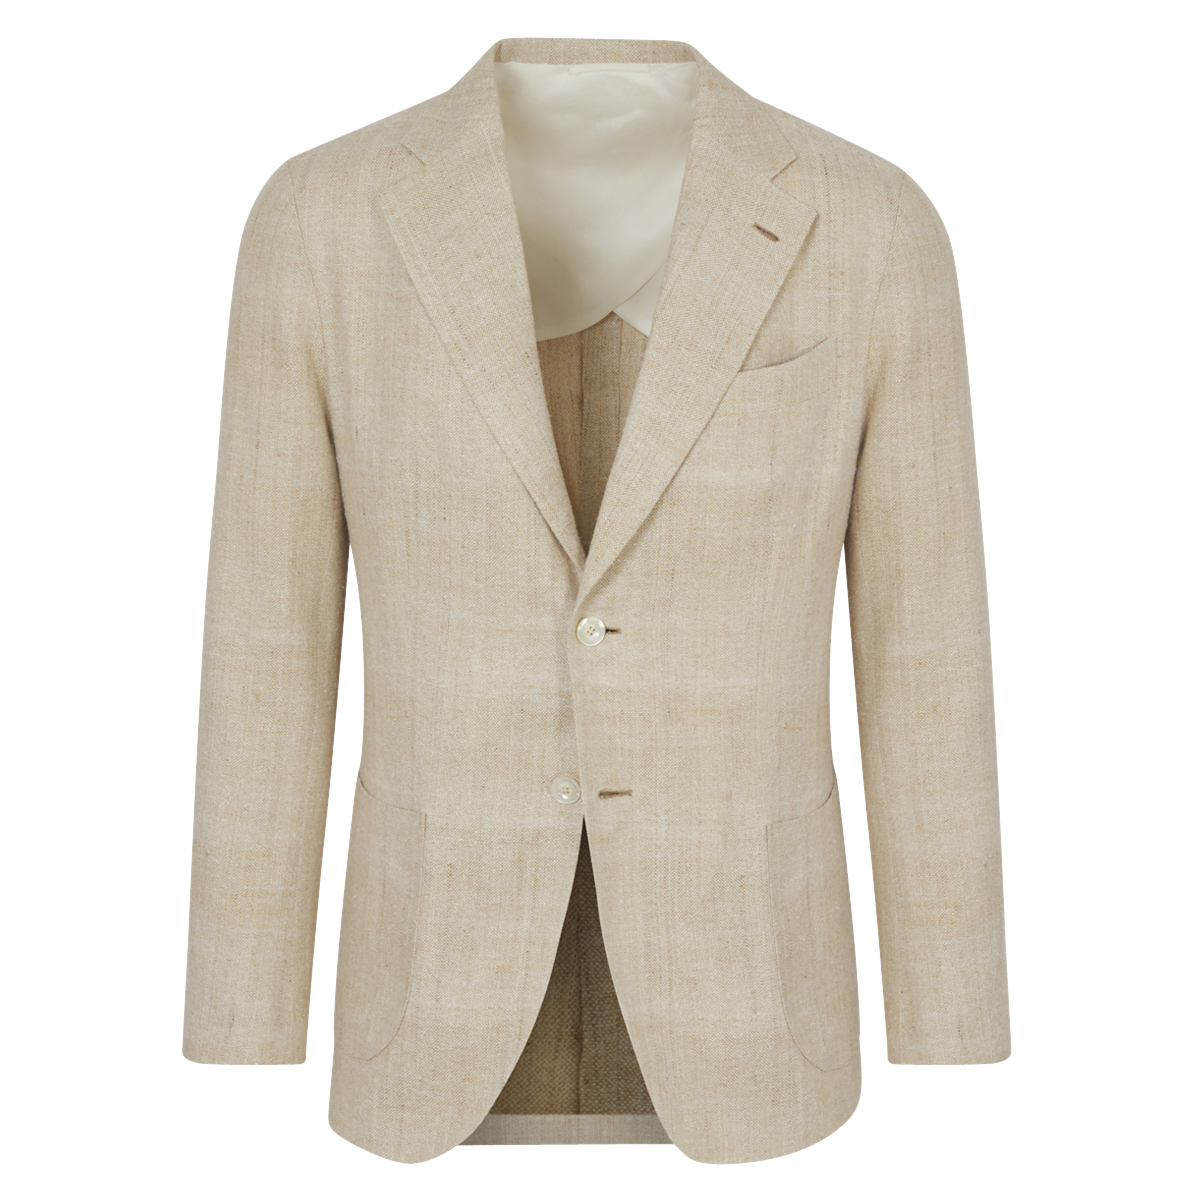 Beige Raw Silk 'Resort Leisure' Single-Breasted Jacket